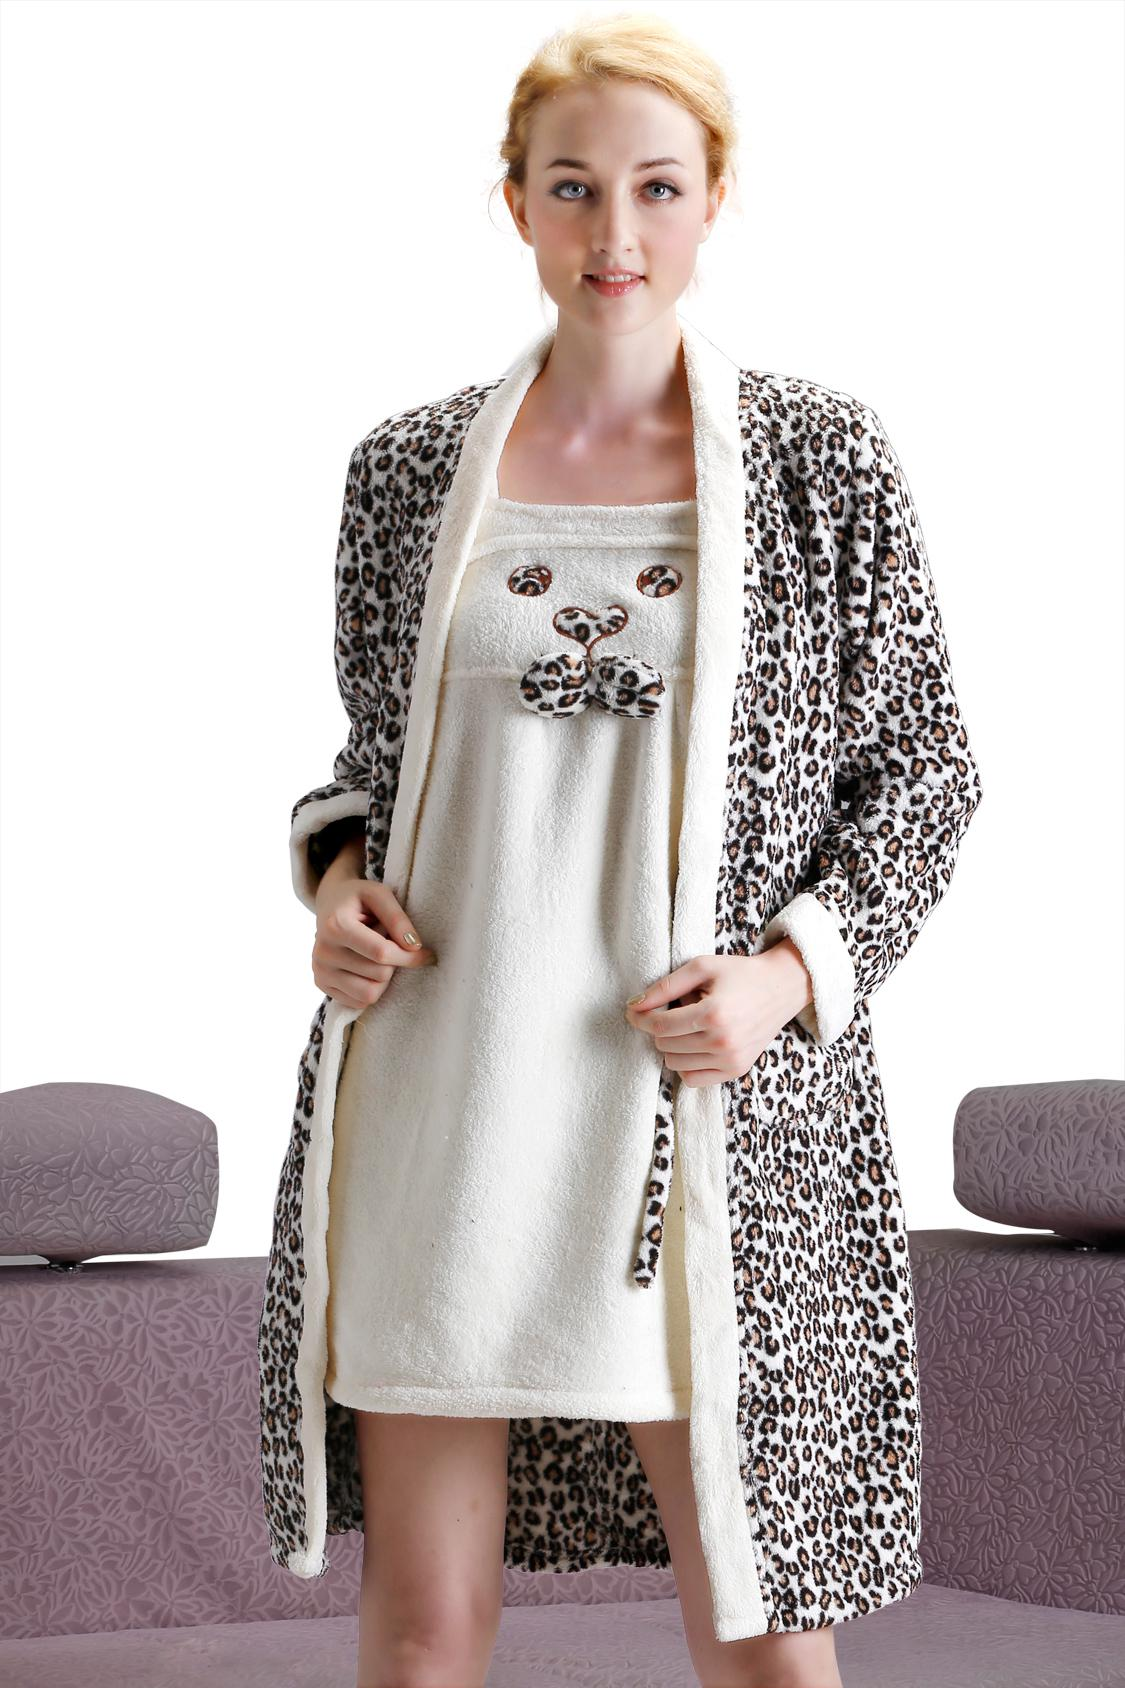 2019 Sexy Women Leopard Long Nightgowns Dress Set Hot Robes Hot Sleeveless  Long Cotton Nightgown Leopard Print Bathrobe Ladies Sleepwear HS13 From  Beauty99 4b9212973